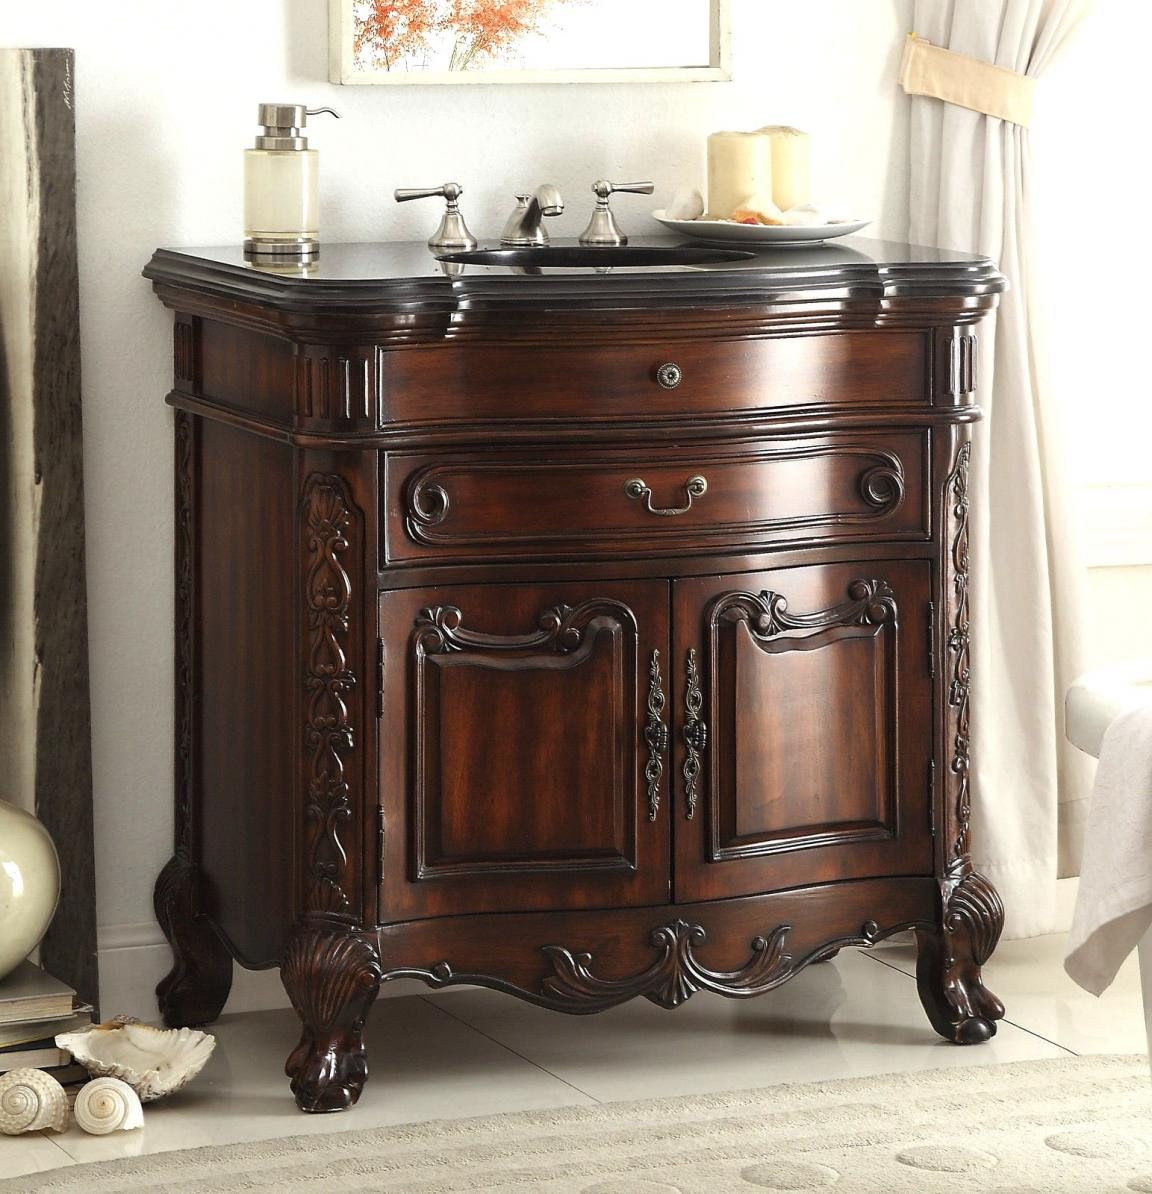 alluring-wooden-vessel-sink-vanities-with-carving